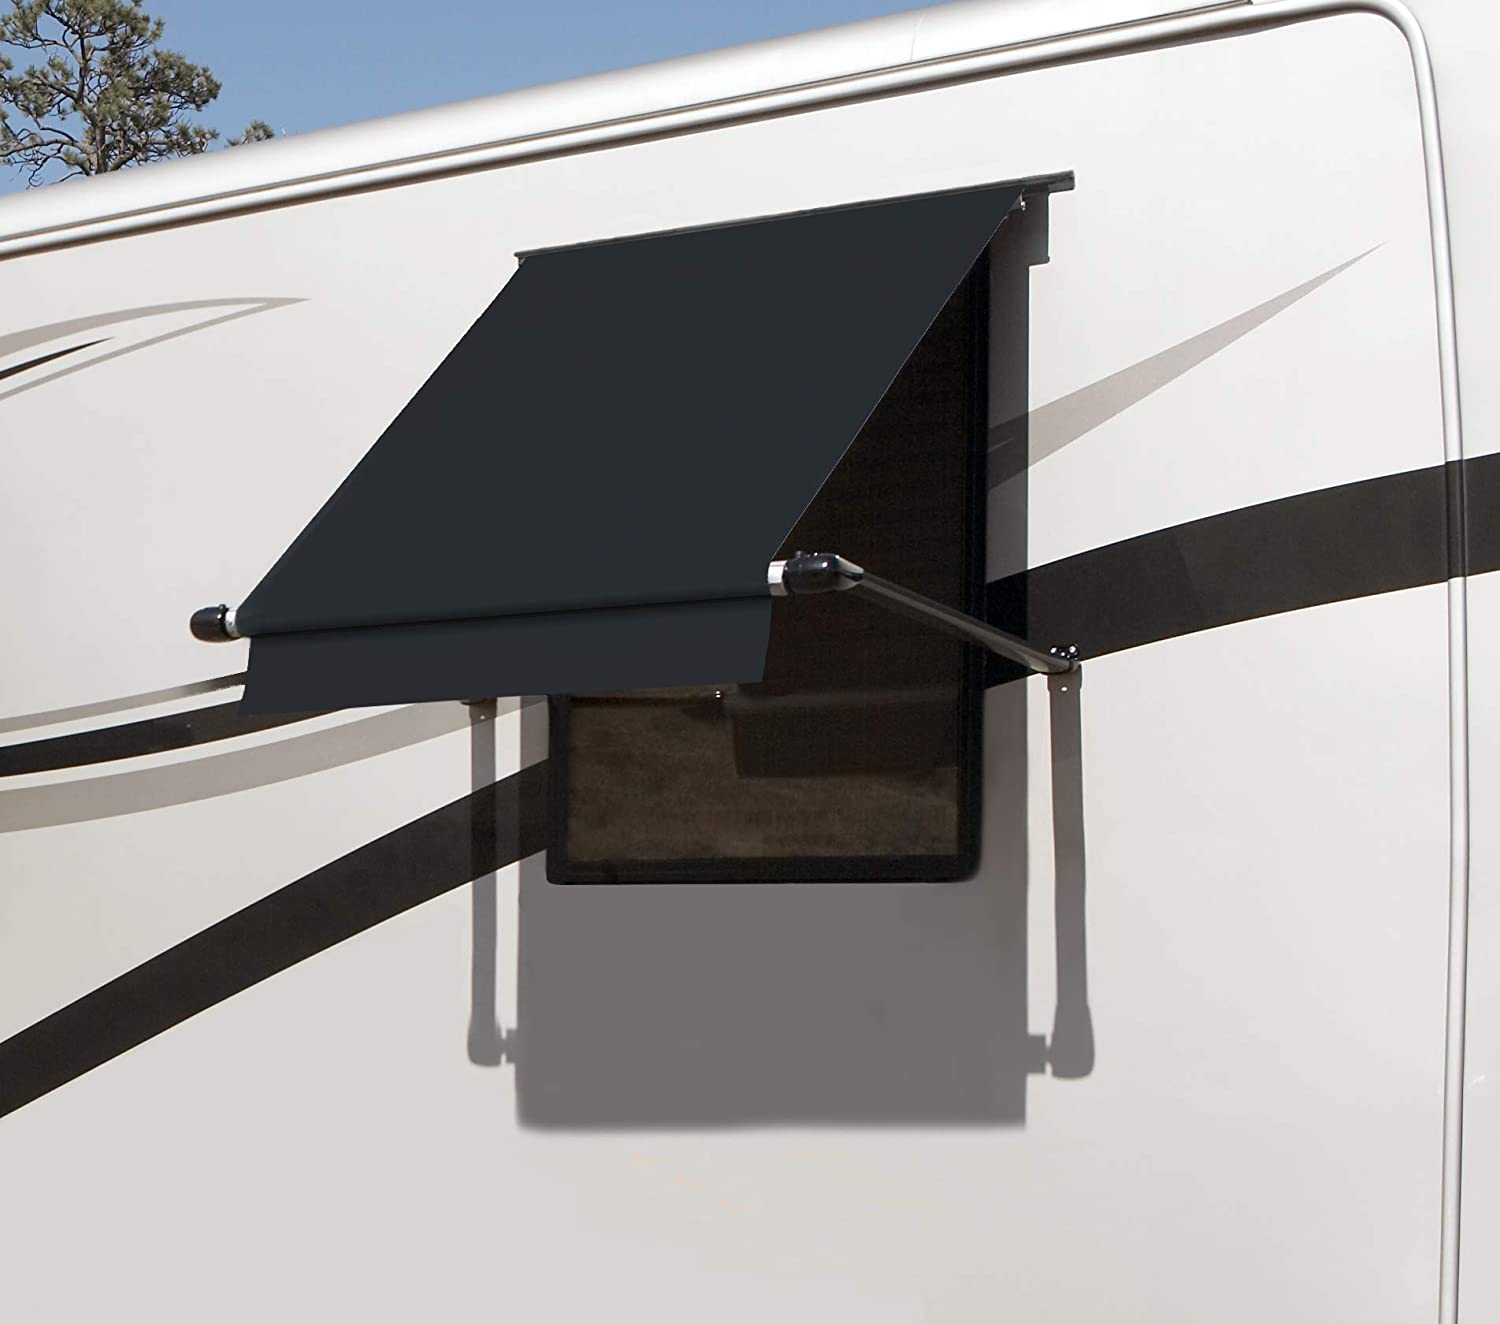 Amazon Com Carefree Wg0504e4eeb Simply Shade Rv Window Awning Black Vinyl 5 60 Automotive